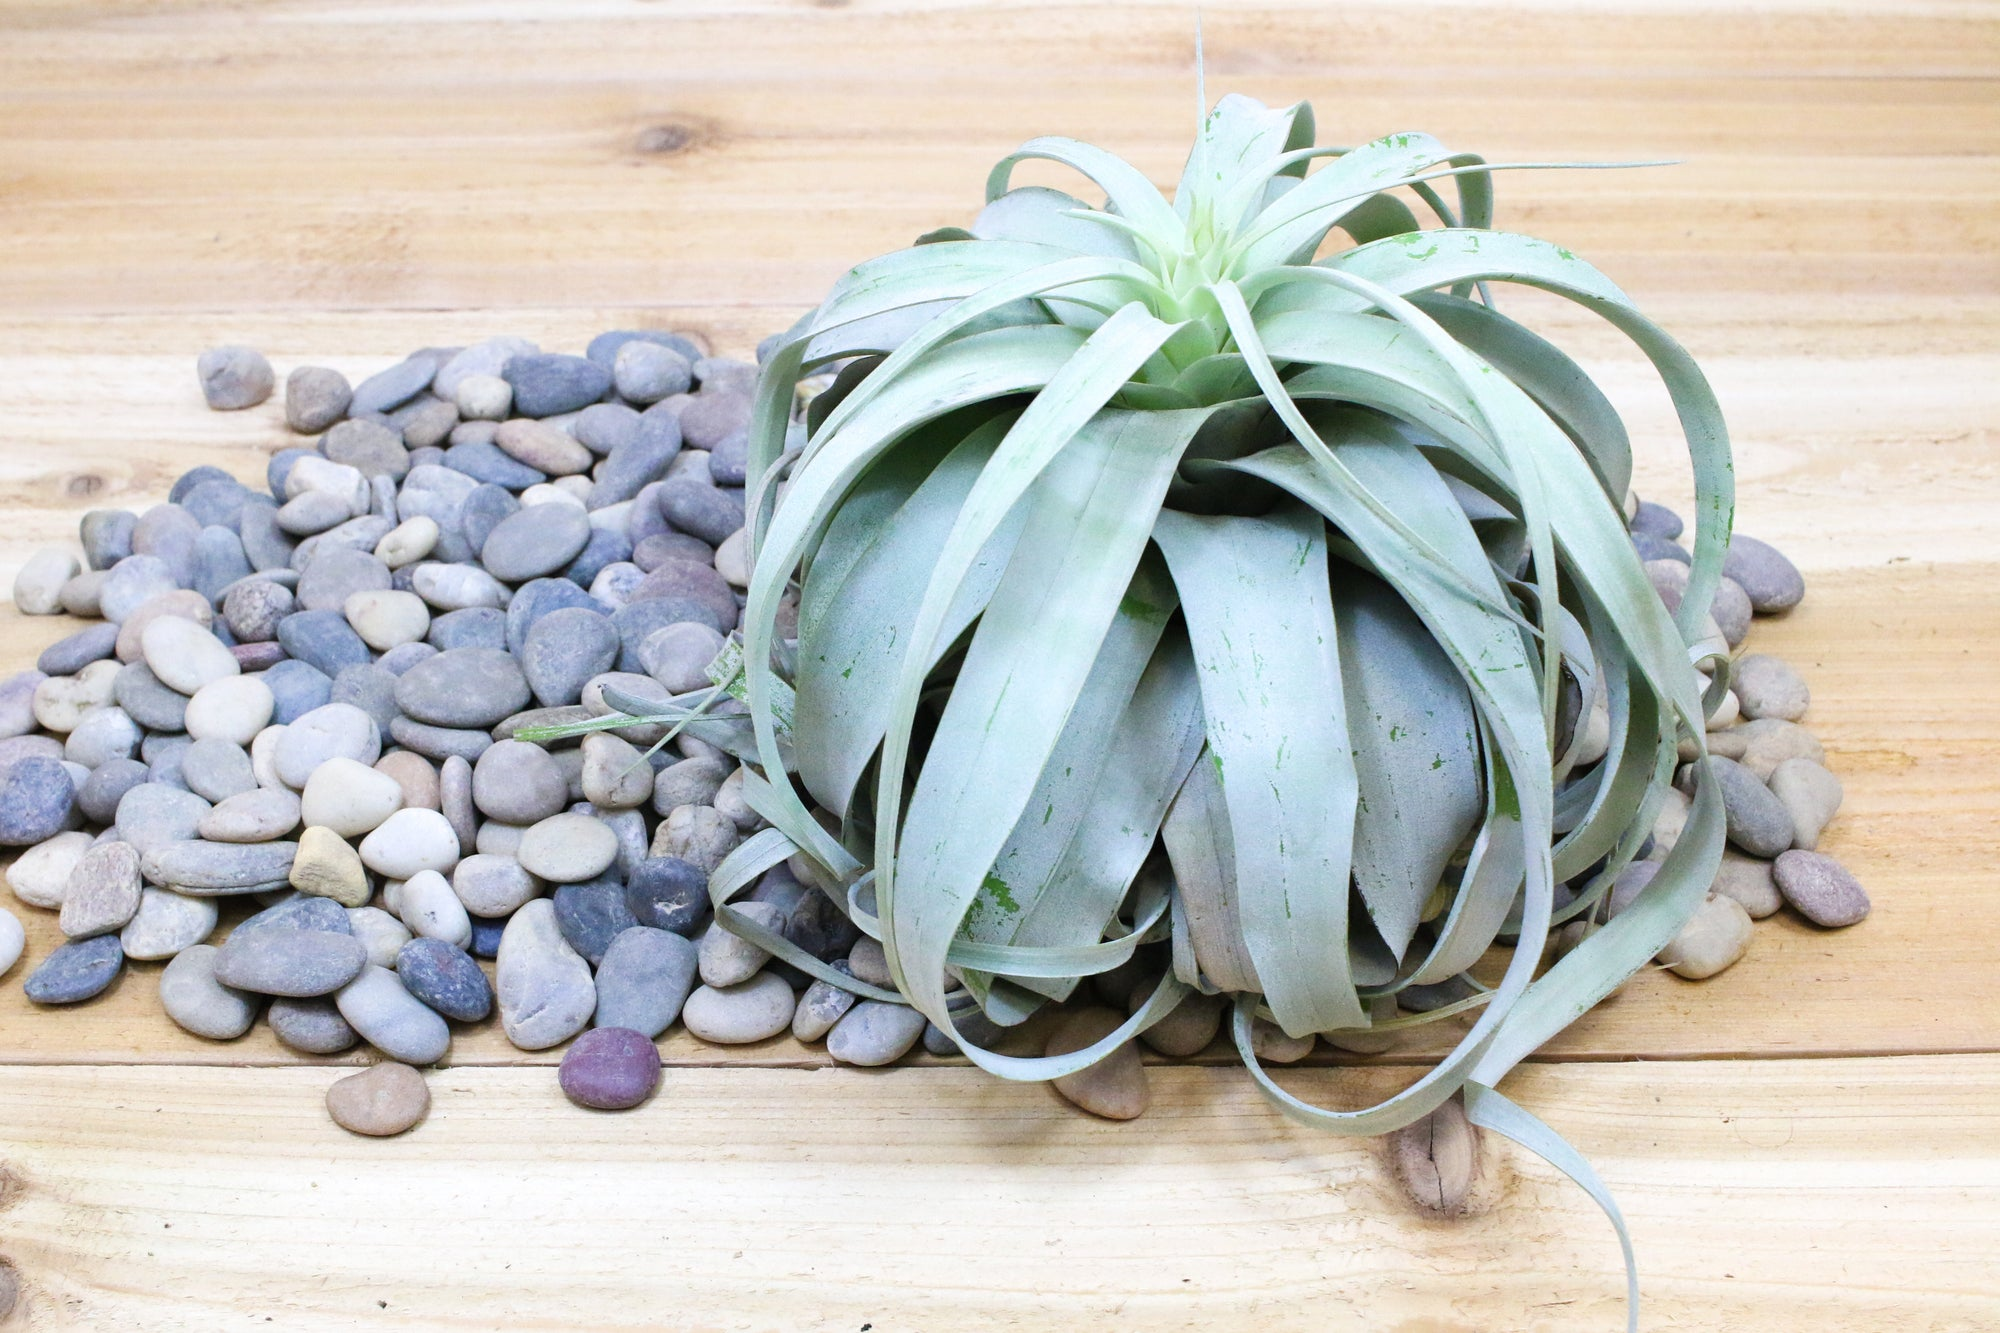 Tillandsia Xerographica - Jumbo Size: 8 to 10 Inches Wide [Single Plant] from AirPlantShop.com